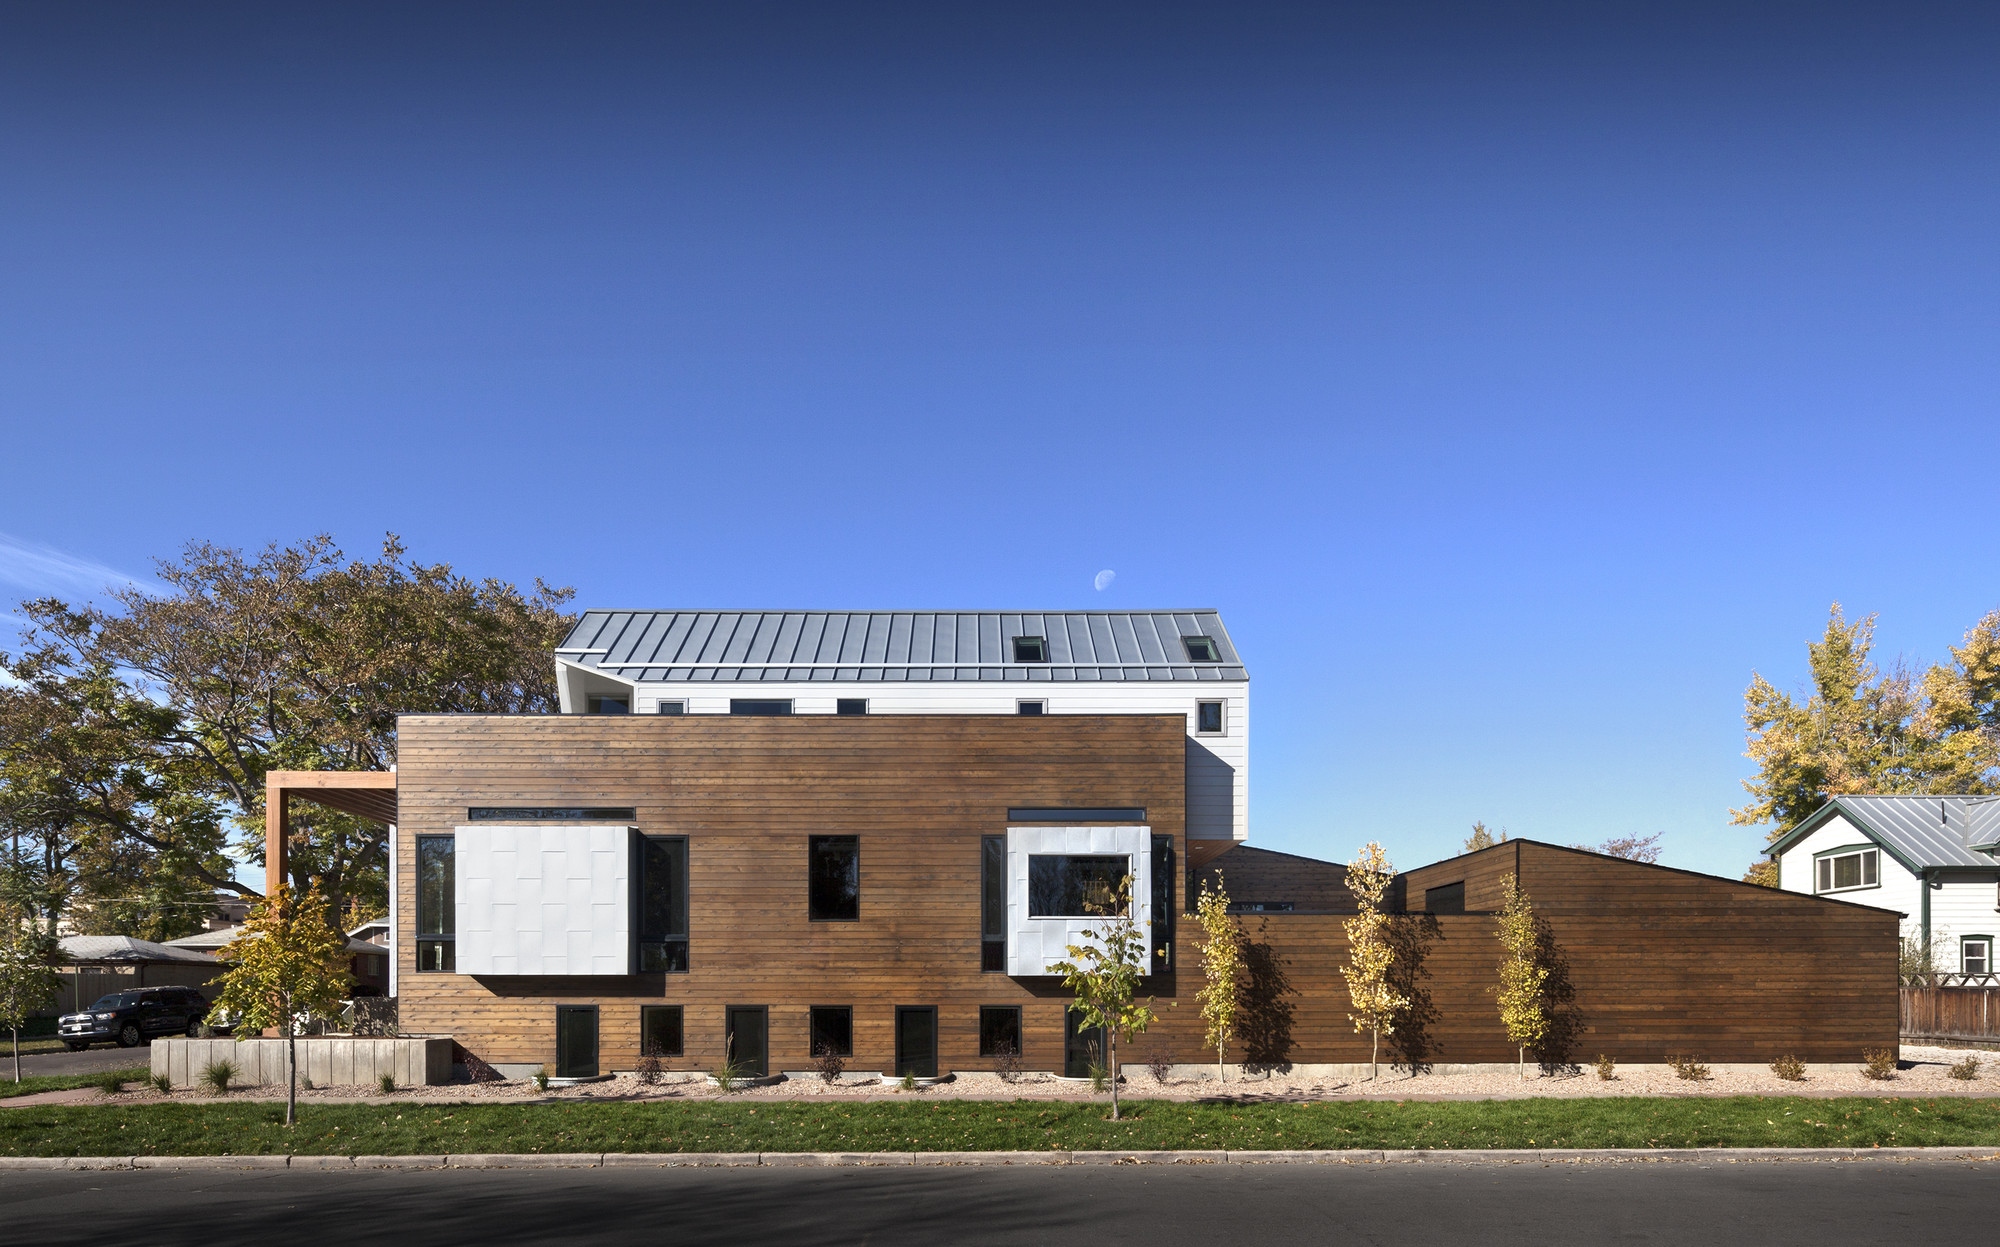 33rd Street House / Meridian 105 Architecture, © Raul J. Garcia